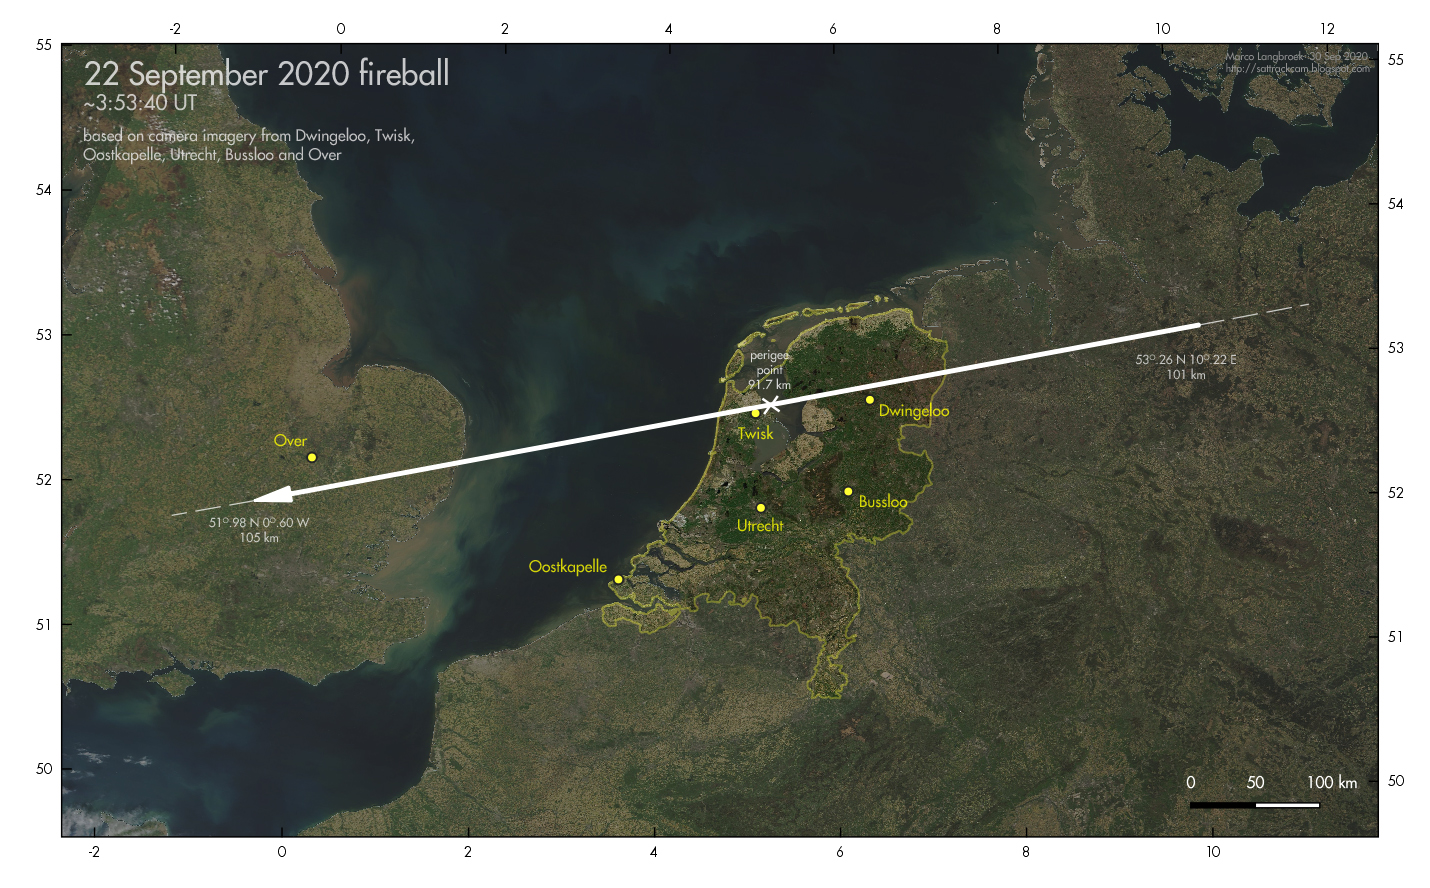 Trajectkaart_22sep2020_035340UT